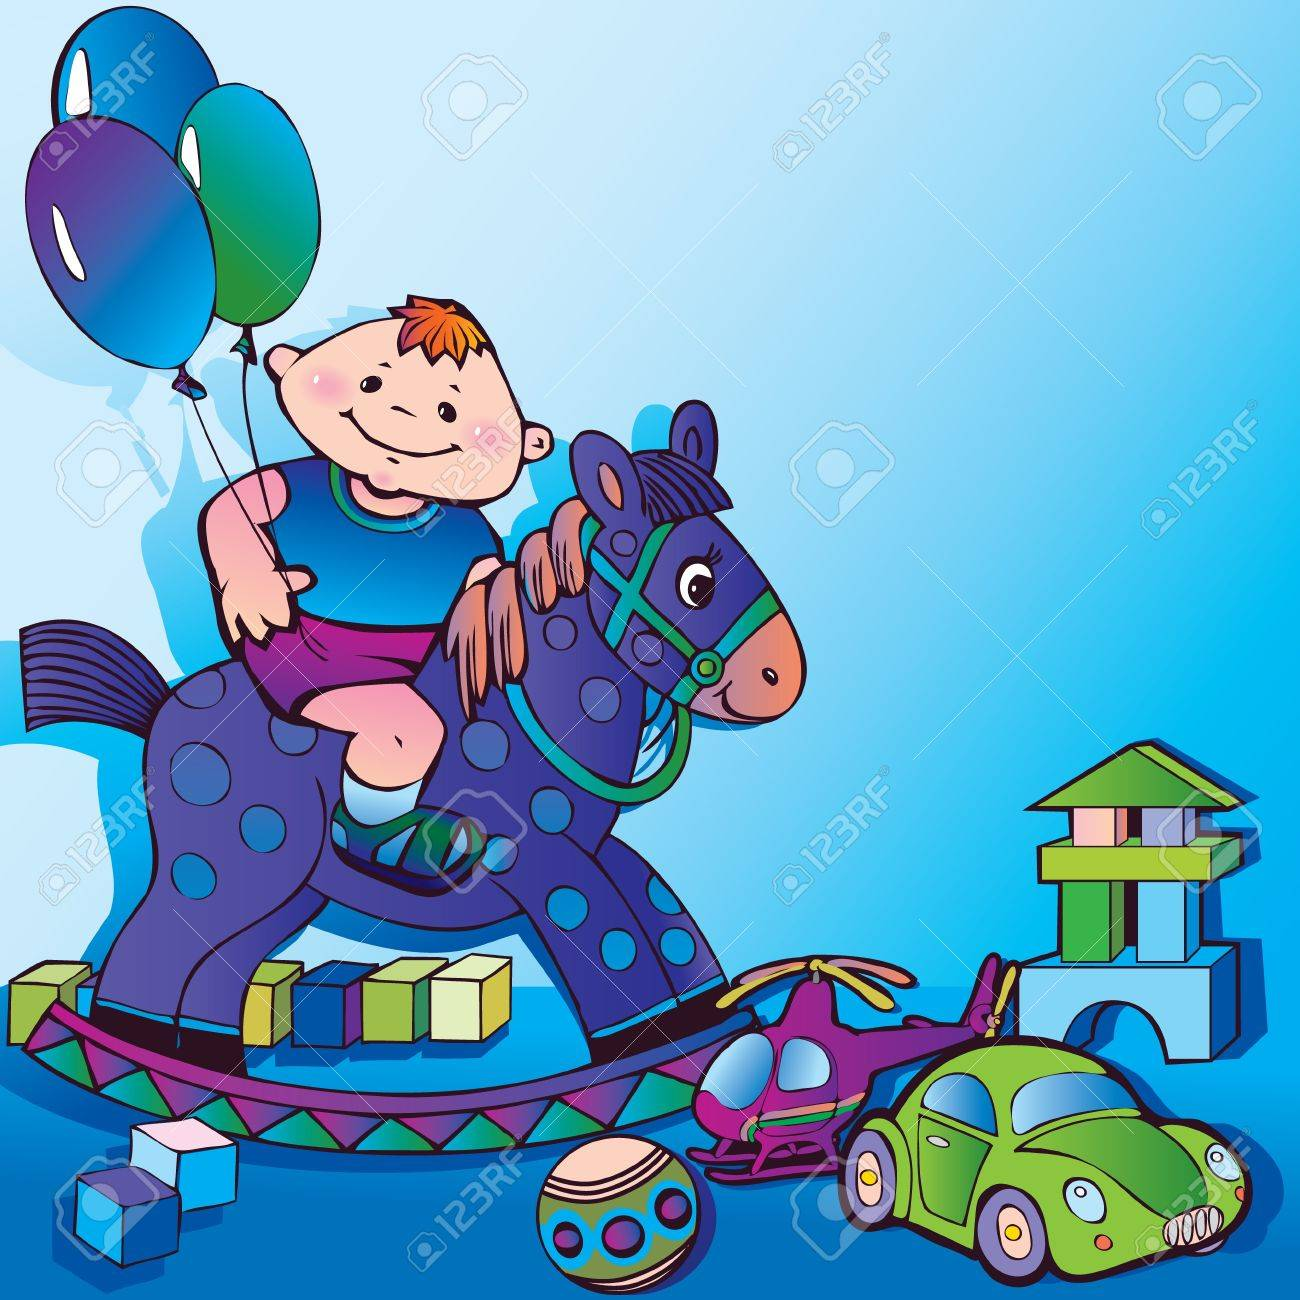 Nice boy with toys  Happy childhood, art-illustration on a blue background Stock Vector - 12996783